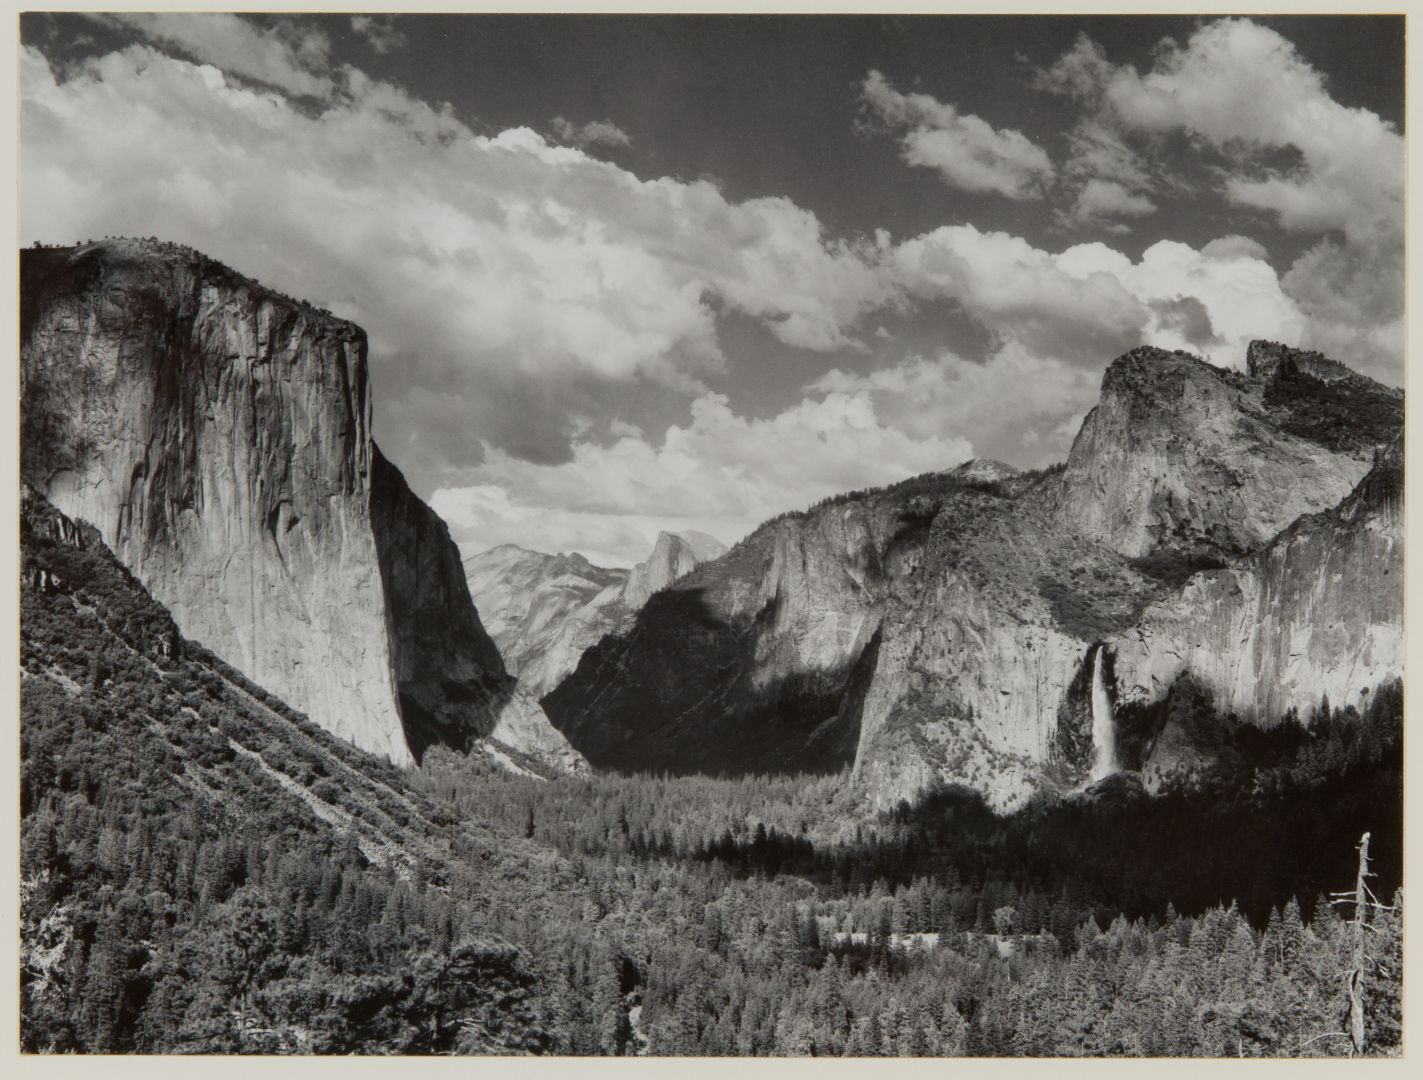 The Photographic Legacy of Ansel Adams National Park Foundation Ansel adams photography yosemite national park